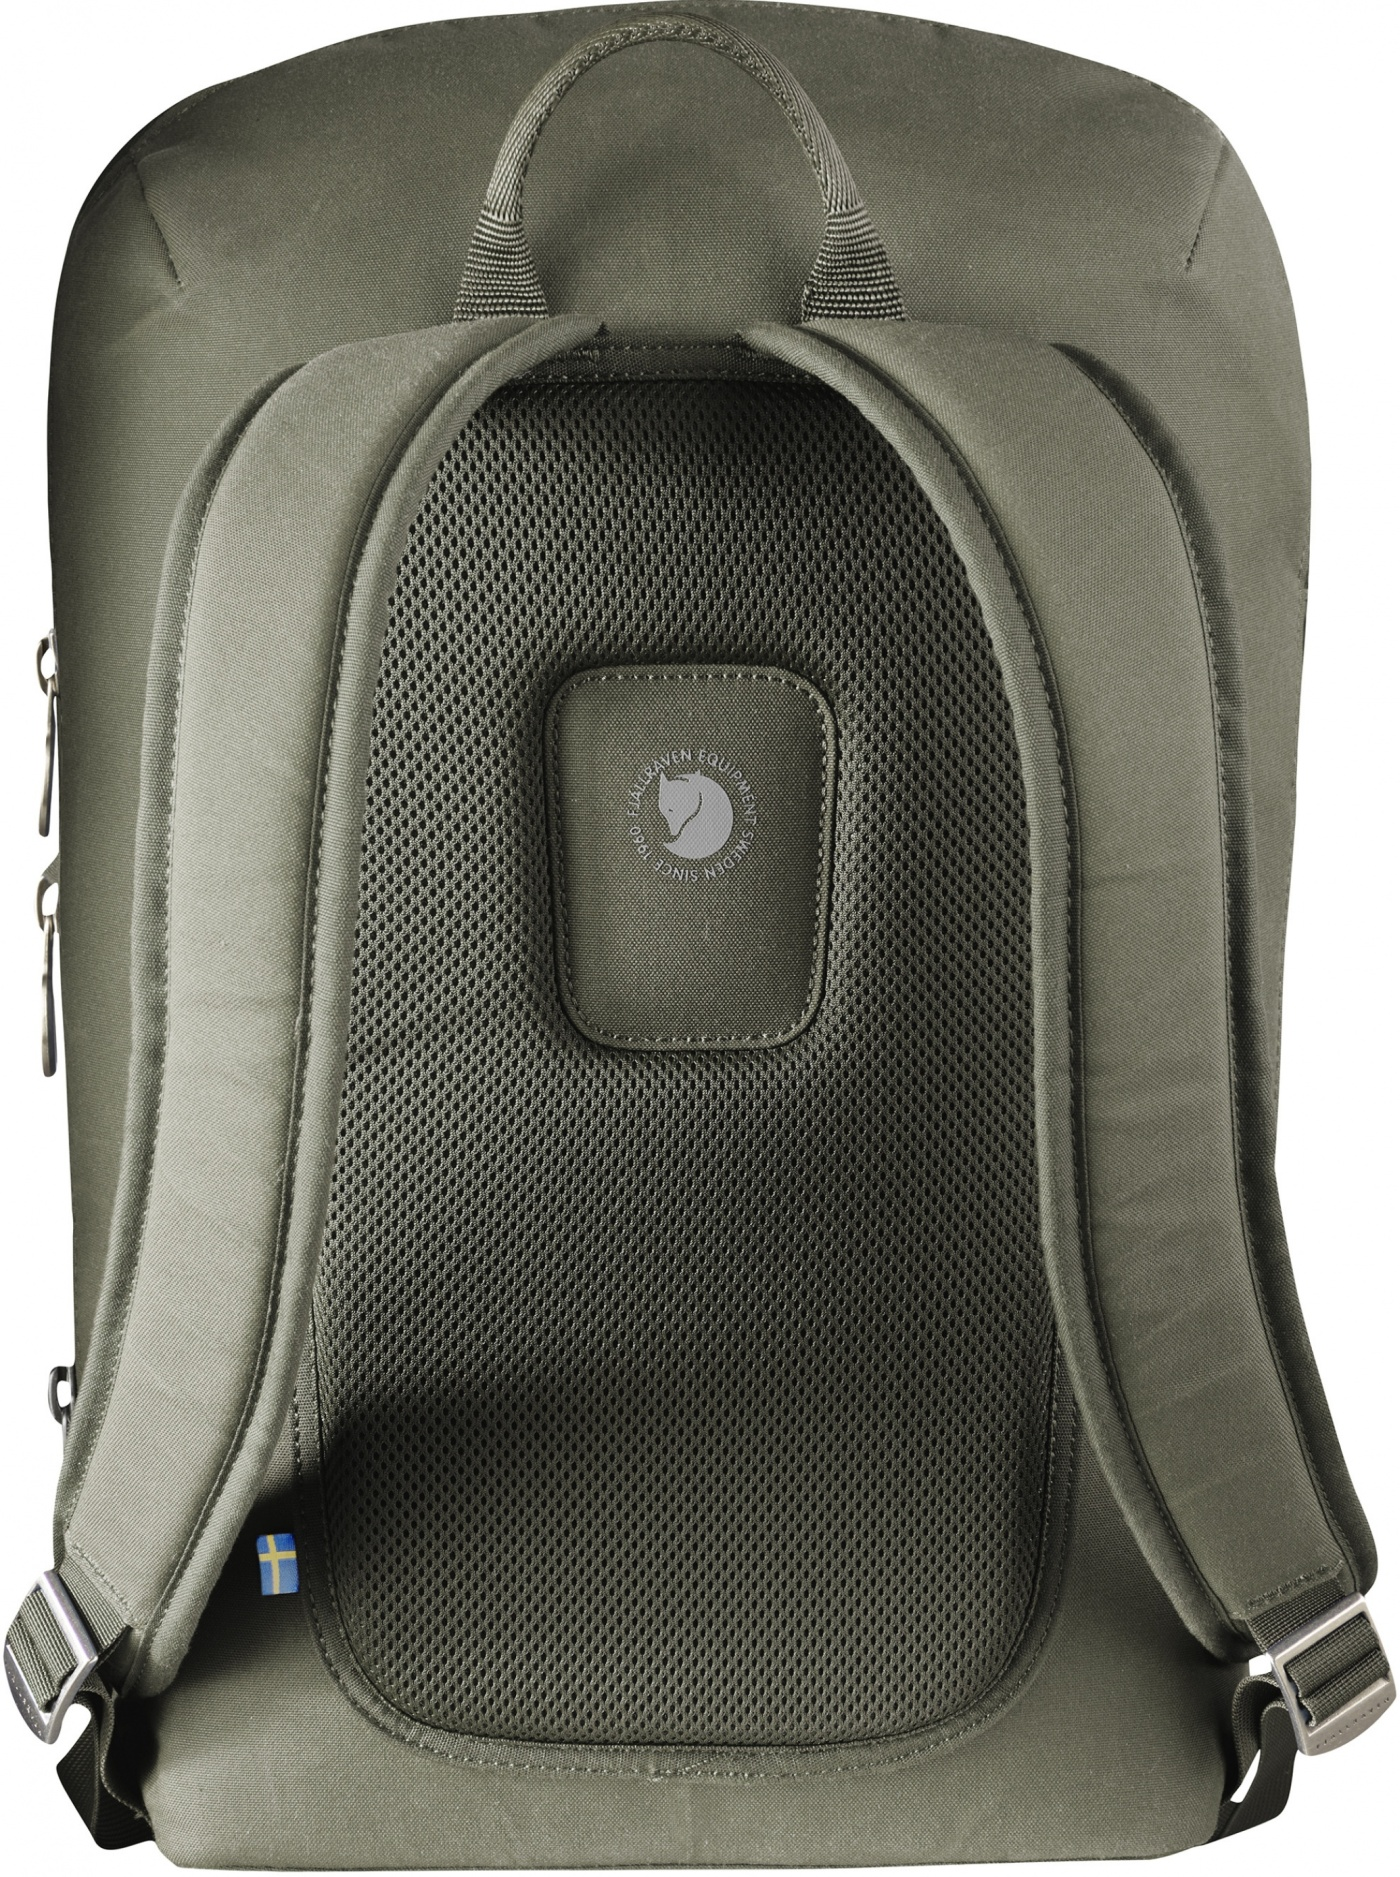 FjallRaven Kiruna Backpack Small Green-30